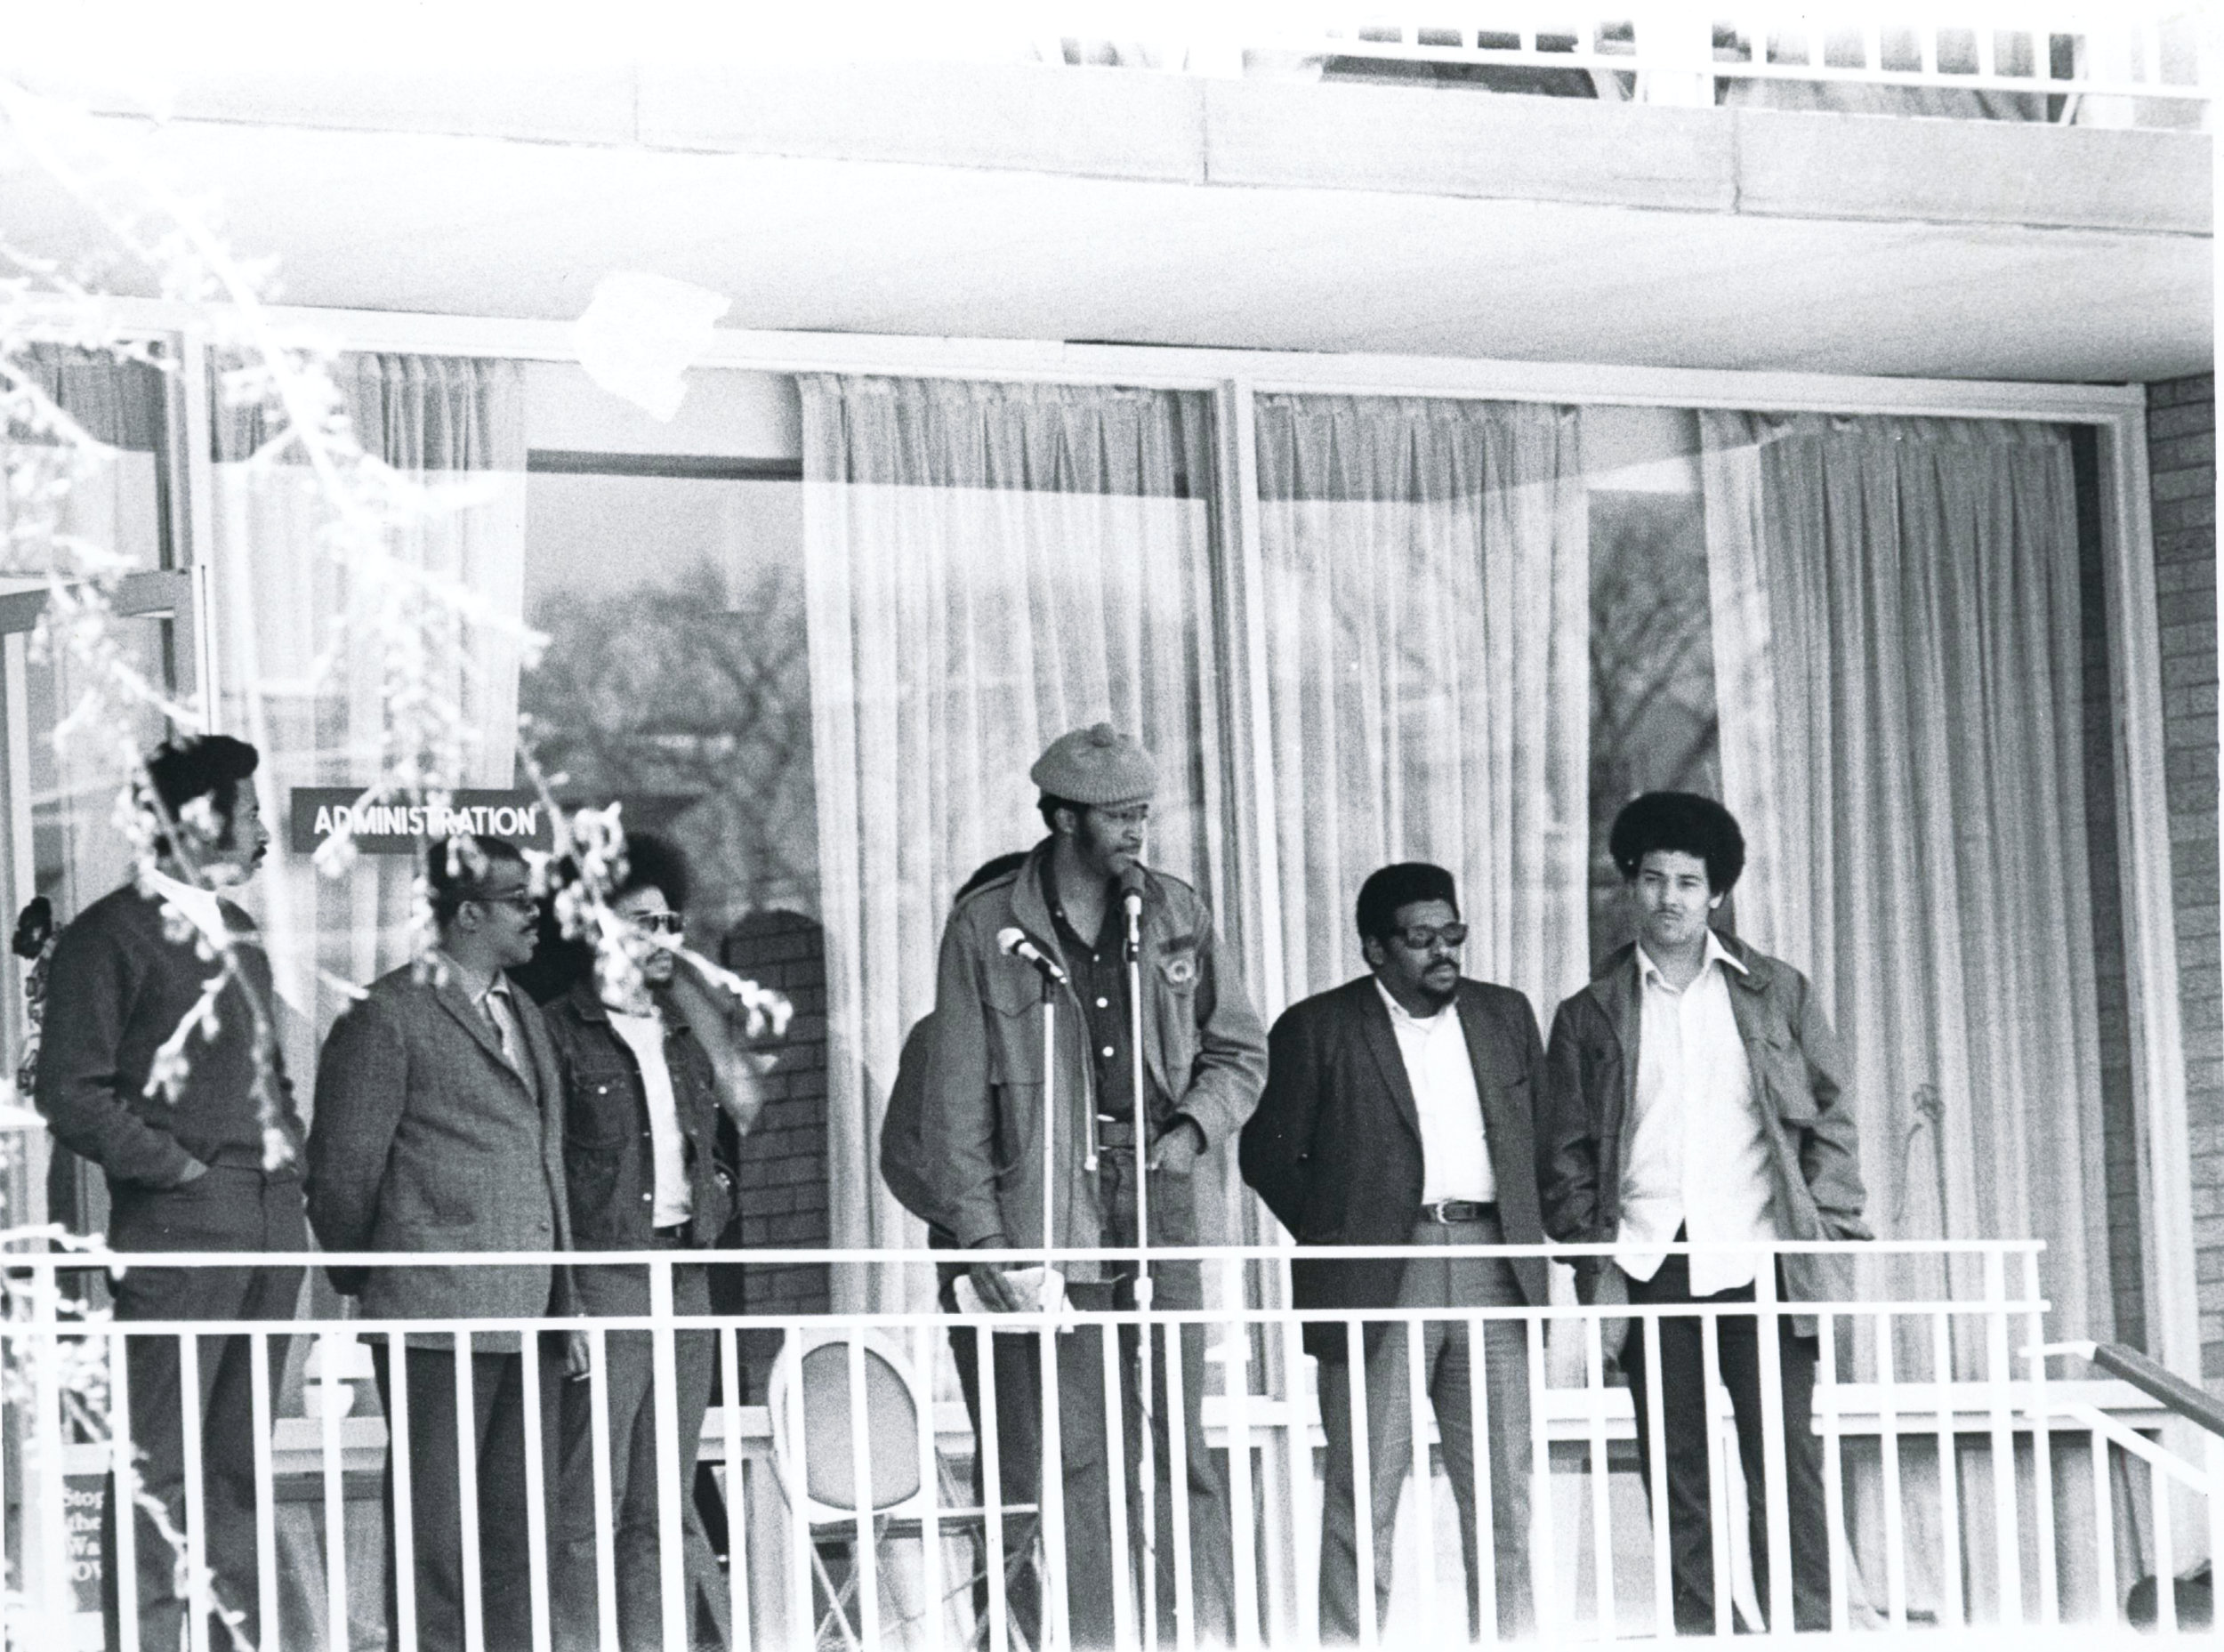 A group of Black student activists standing on the second floor balcony of the Carlotti Administrative Building